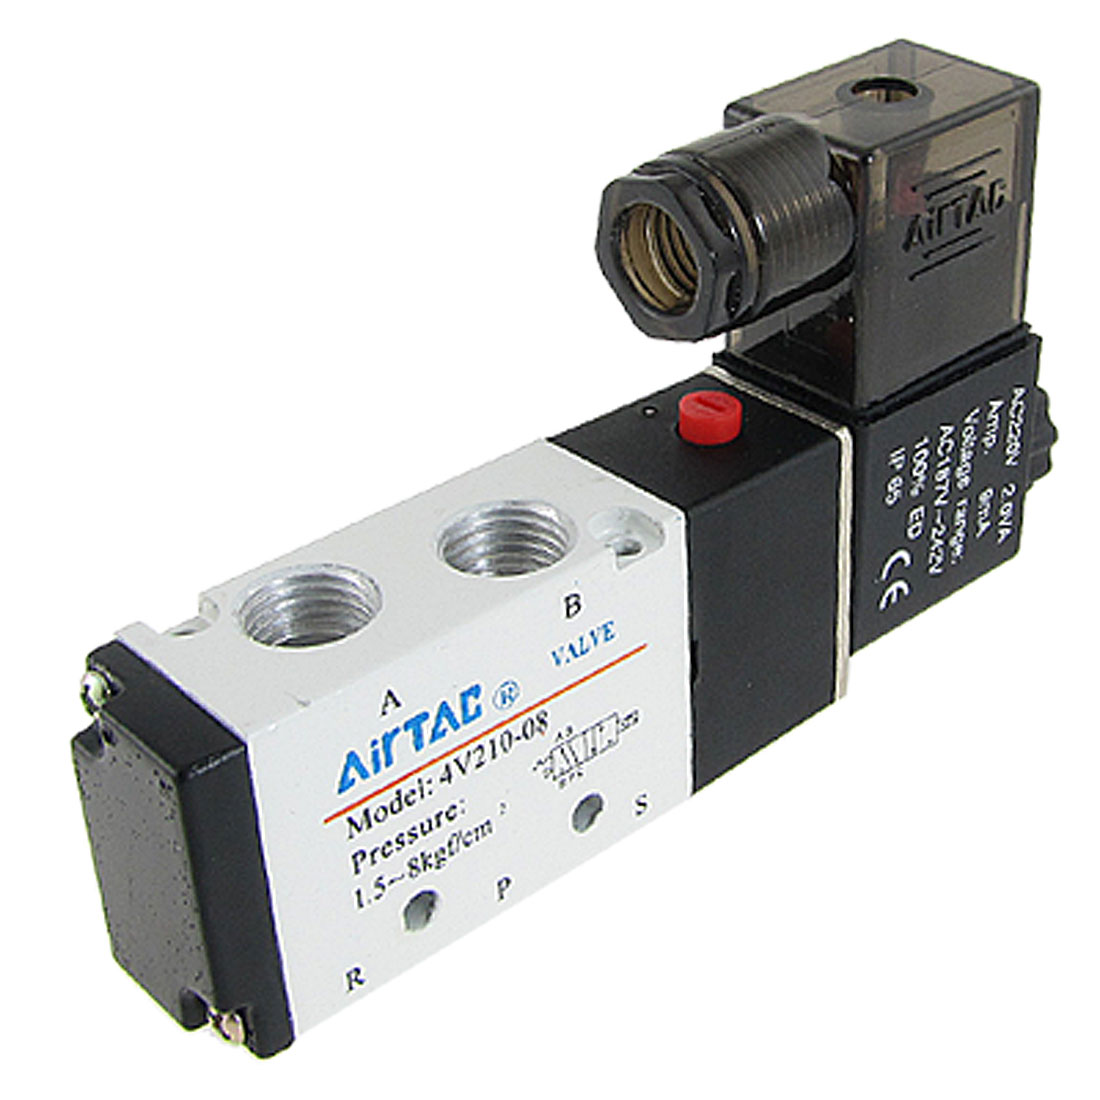 AC220V Single Head 2 Position 5 Port Air Control Solenoid Valve 4V210-08